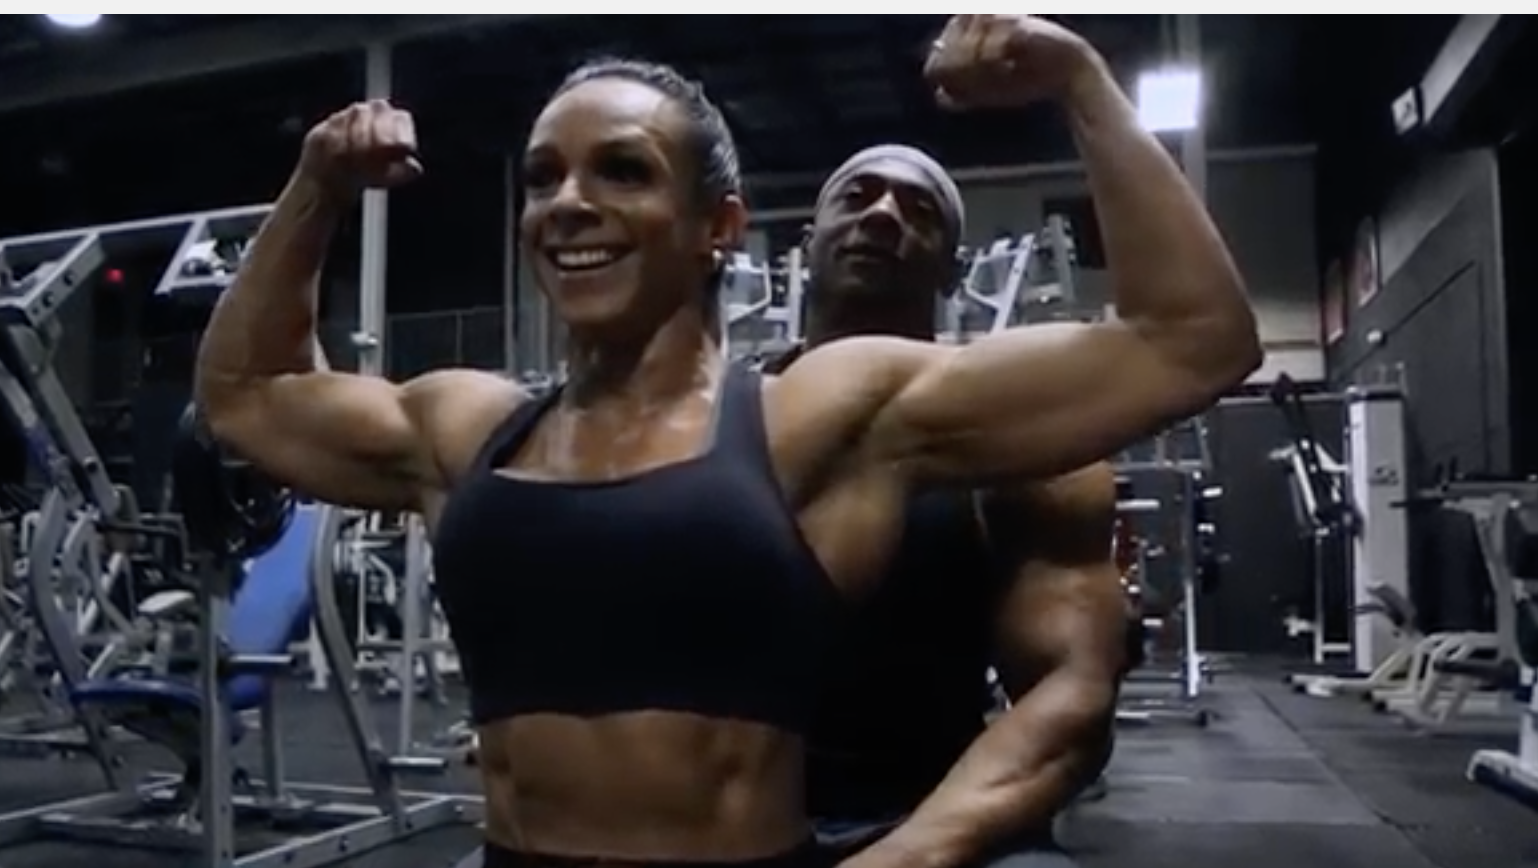 James Davis, IFBB Classic Physique doing a delt demolition training session with Petala Rosas